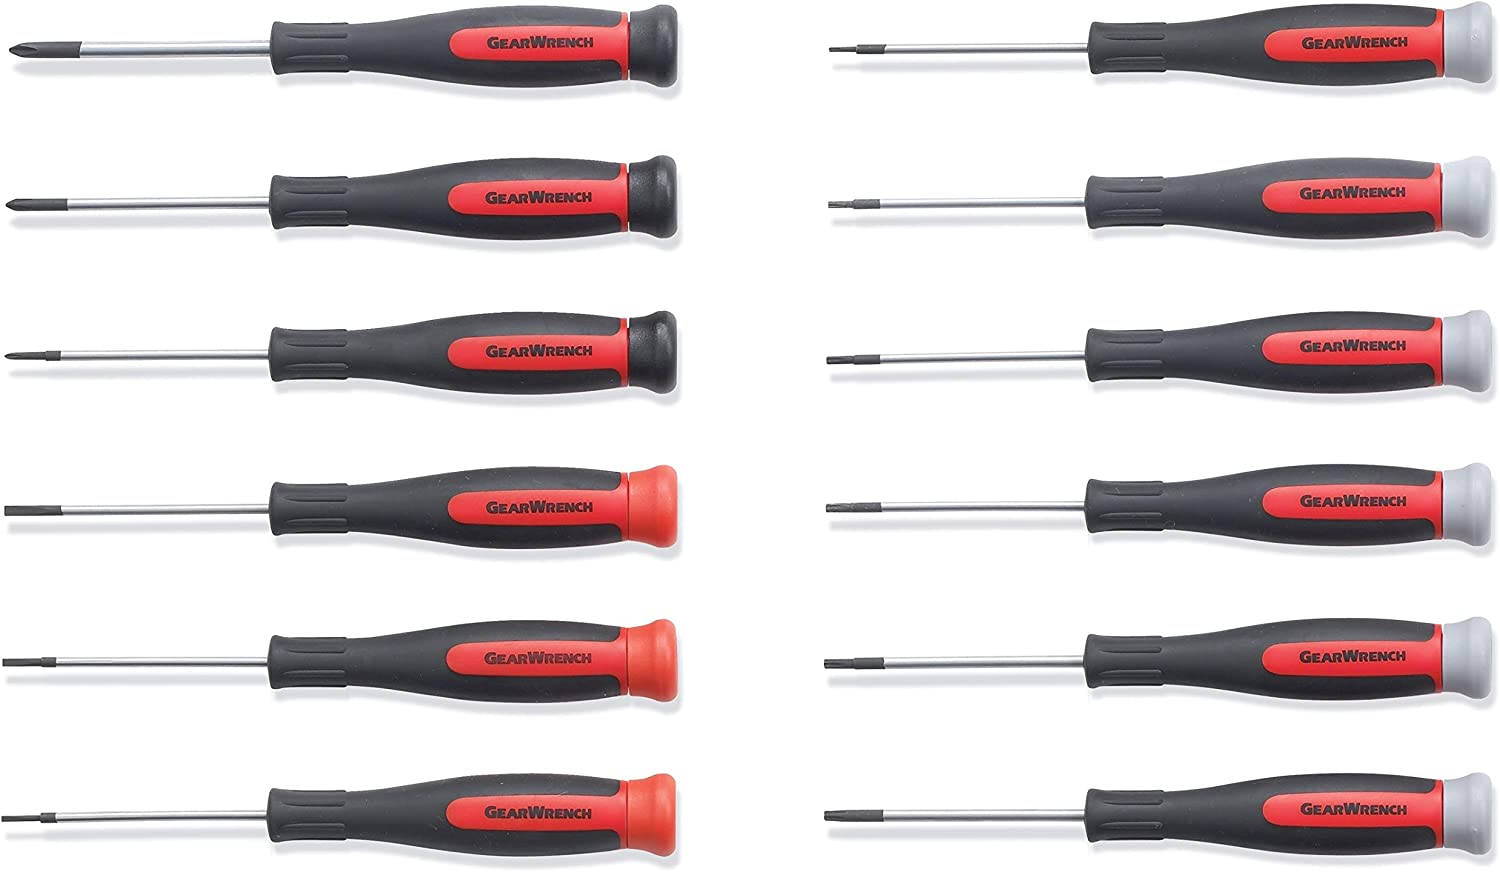 GearWrench 80057 12 Piece Mini and Torx Dual Material Screwdriver Set